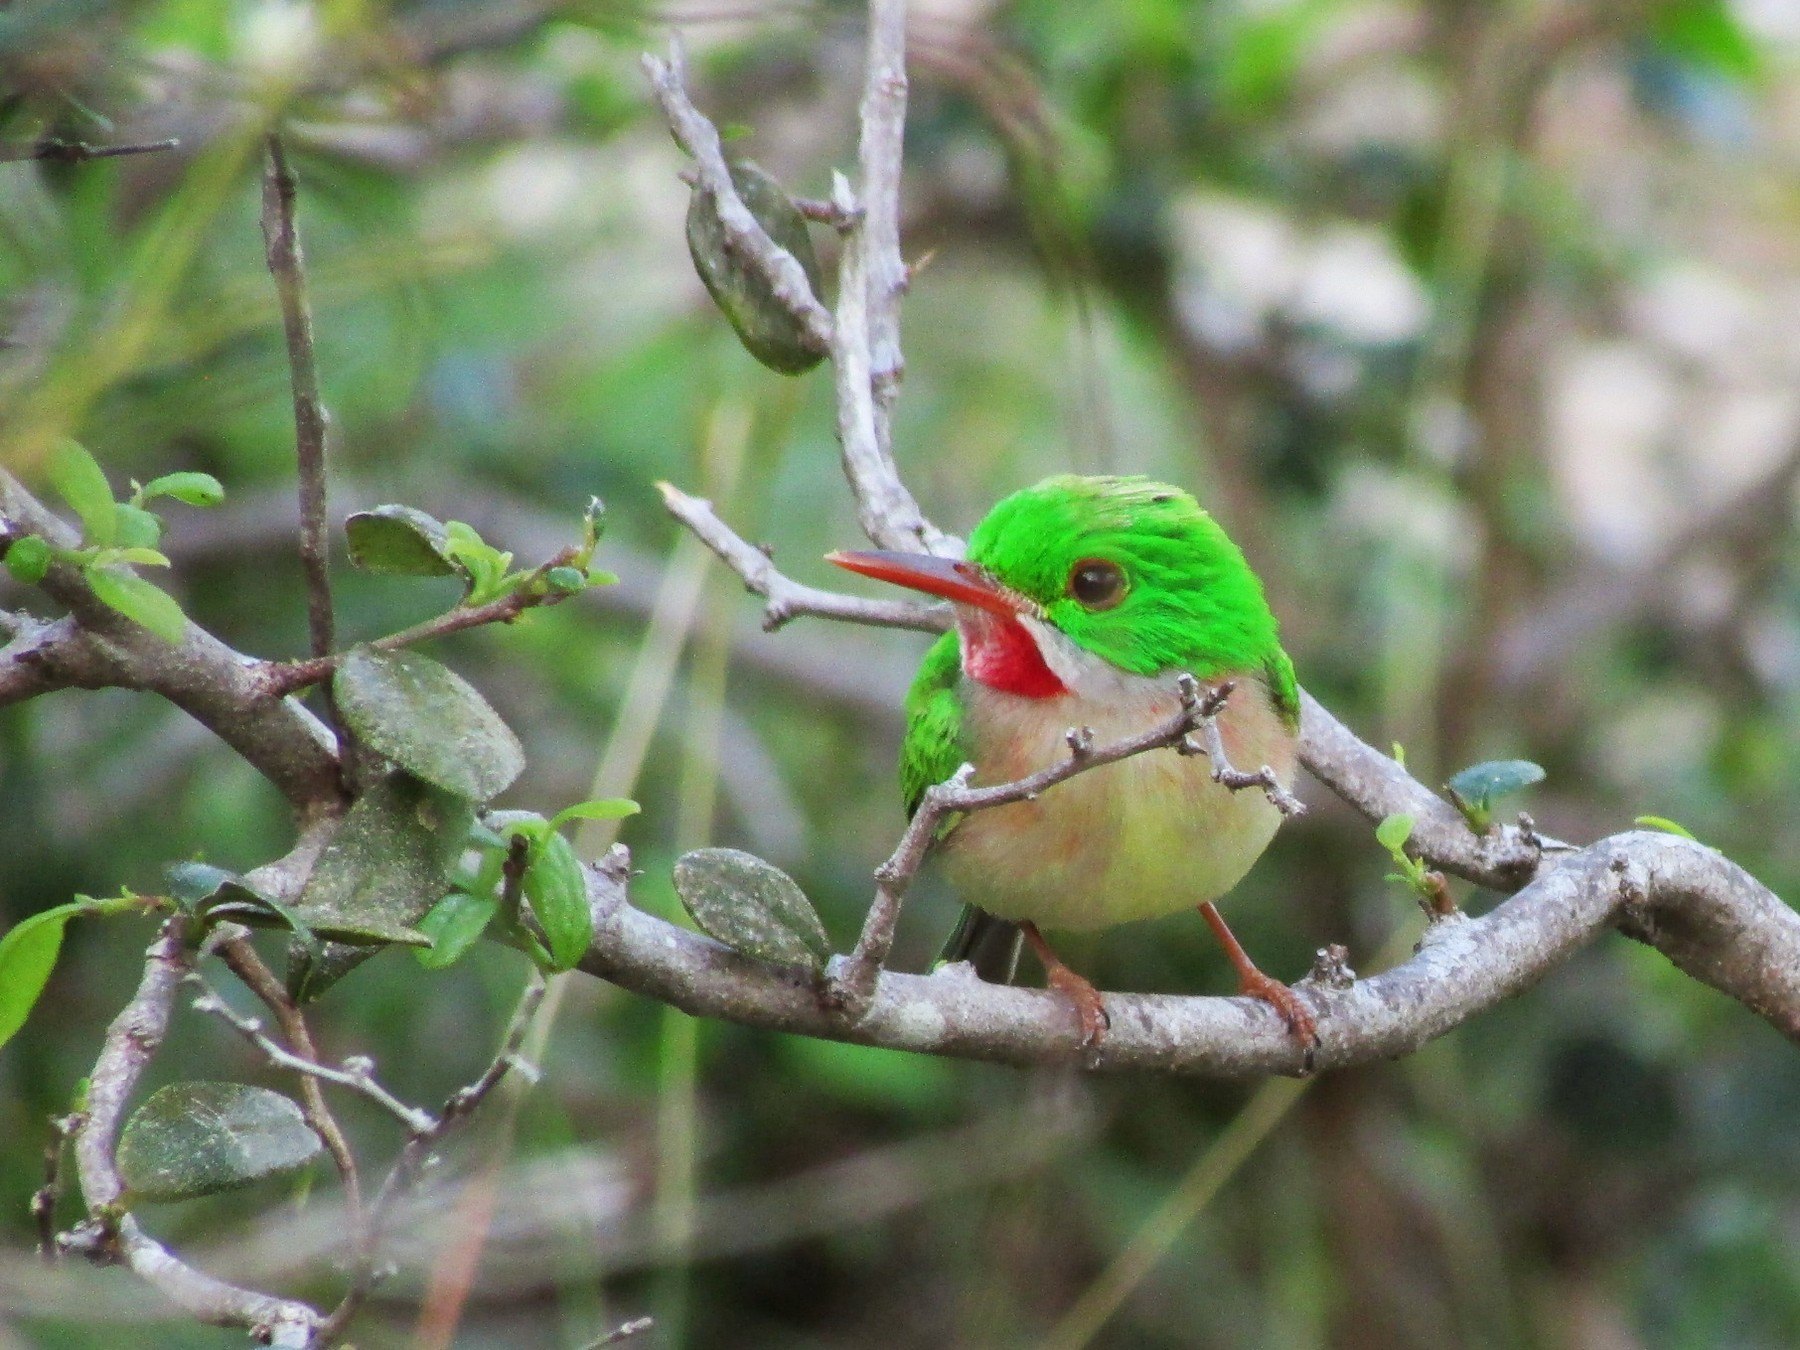 Broad-billed Tody - Sean Christensen